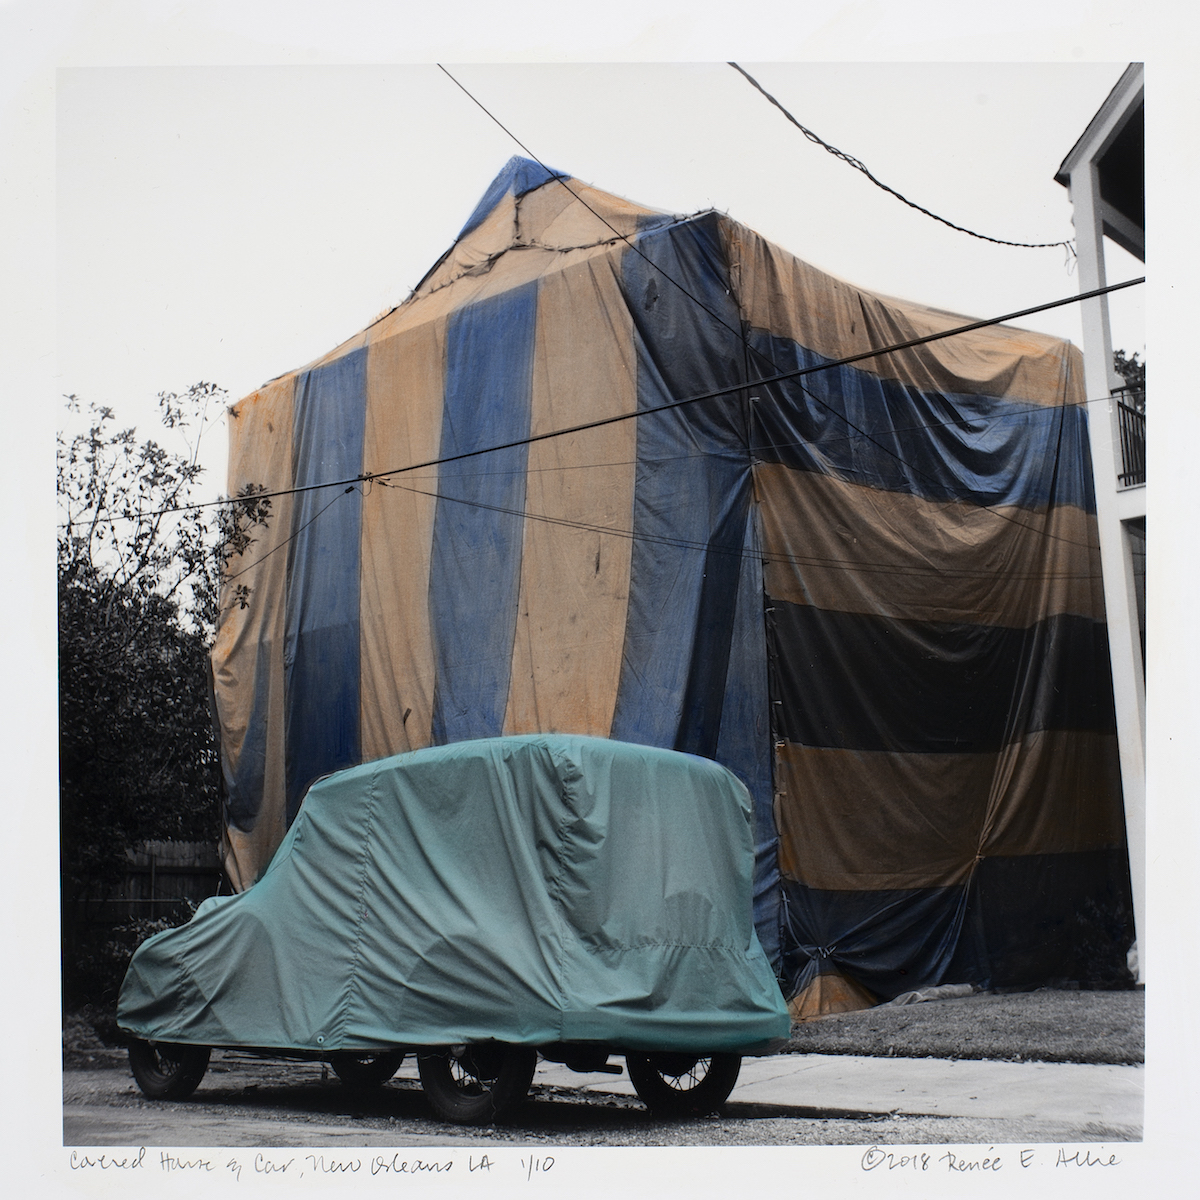 Renee Allie, Covered House & Car, New Orleans, LA, 2018. Collection of the artist. Courtesy of Ogden Museum of Southern Art